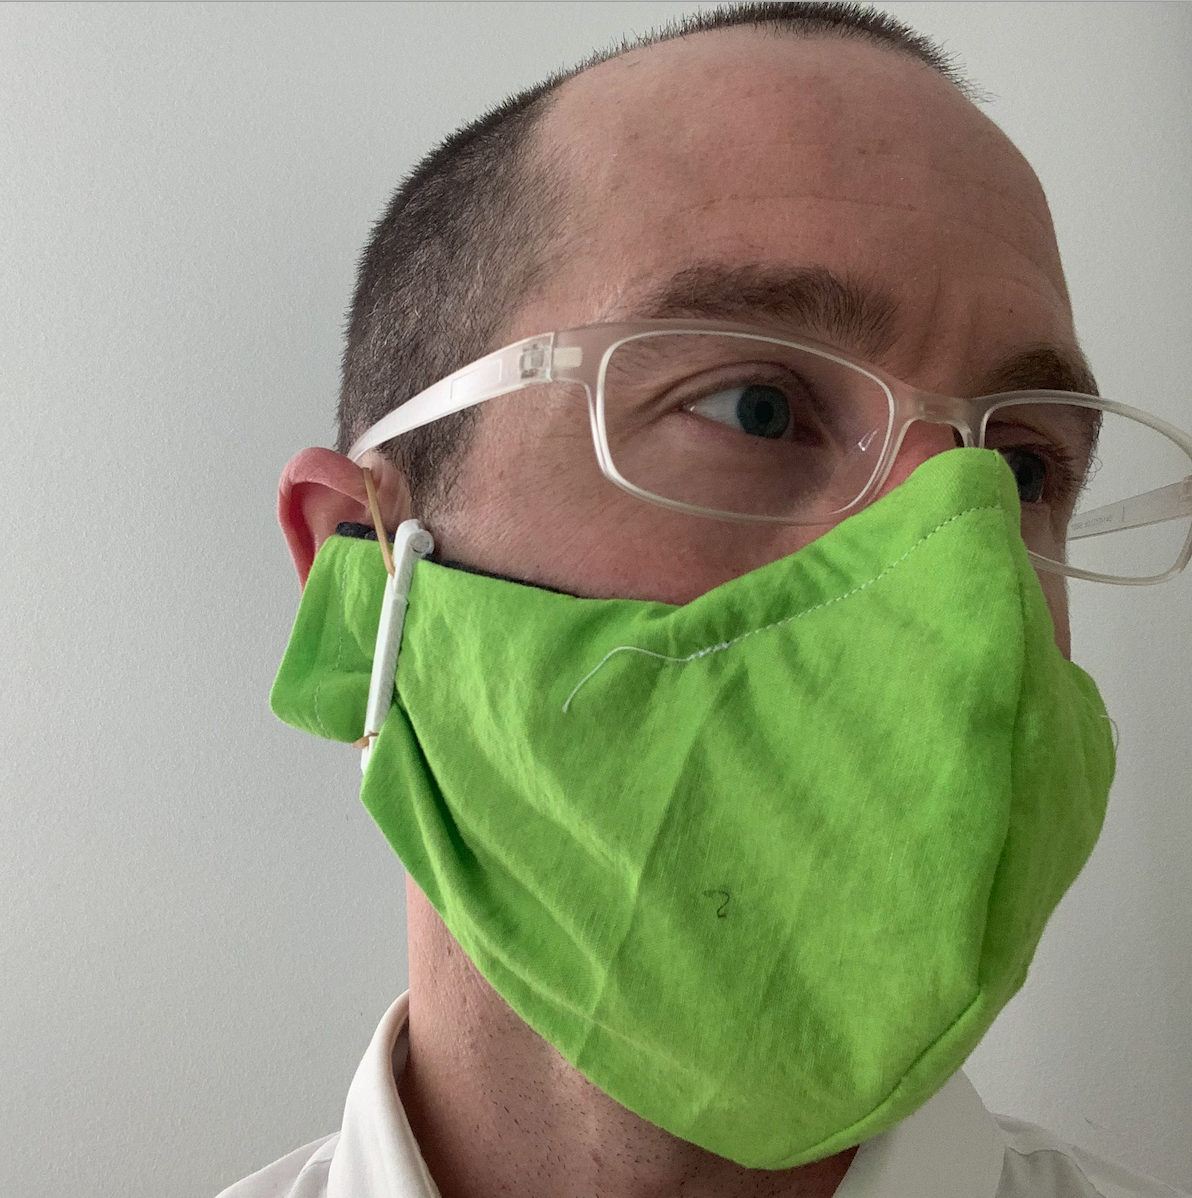 Michael Tunkey wearing DIY prototype face mask